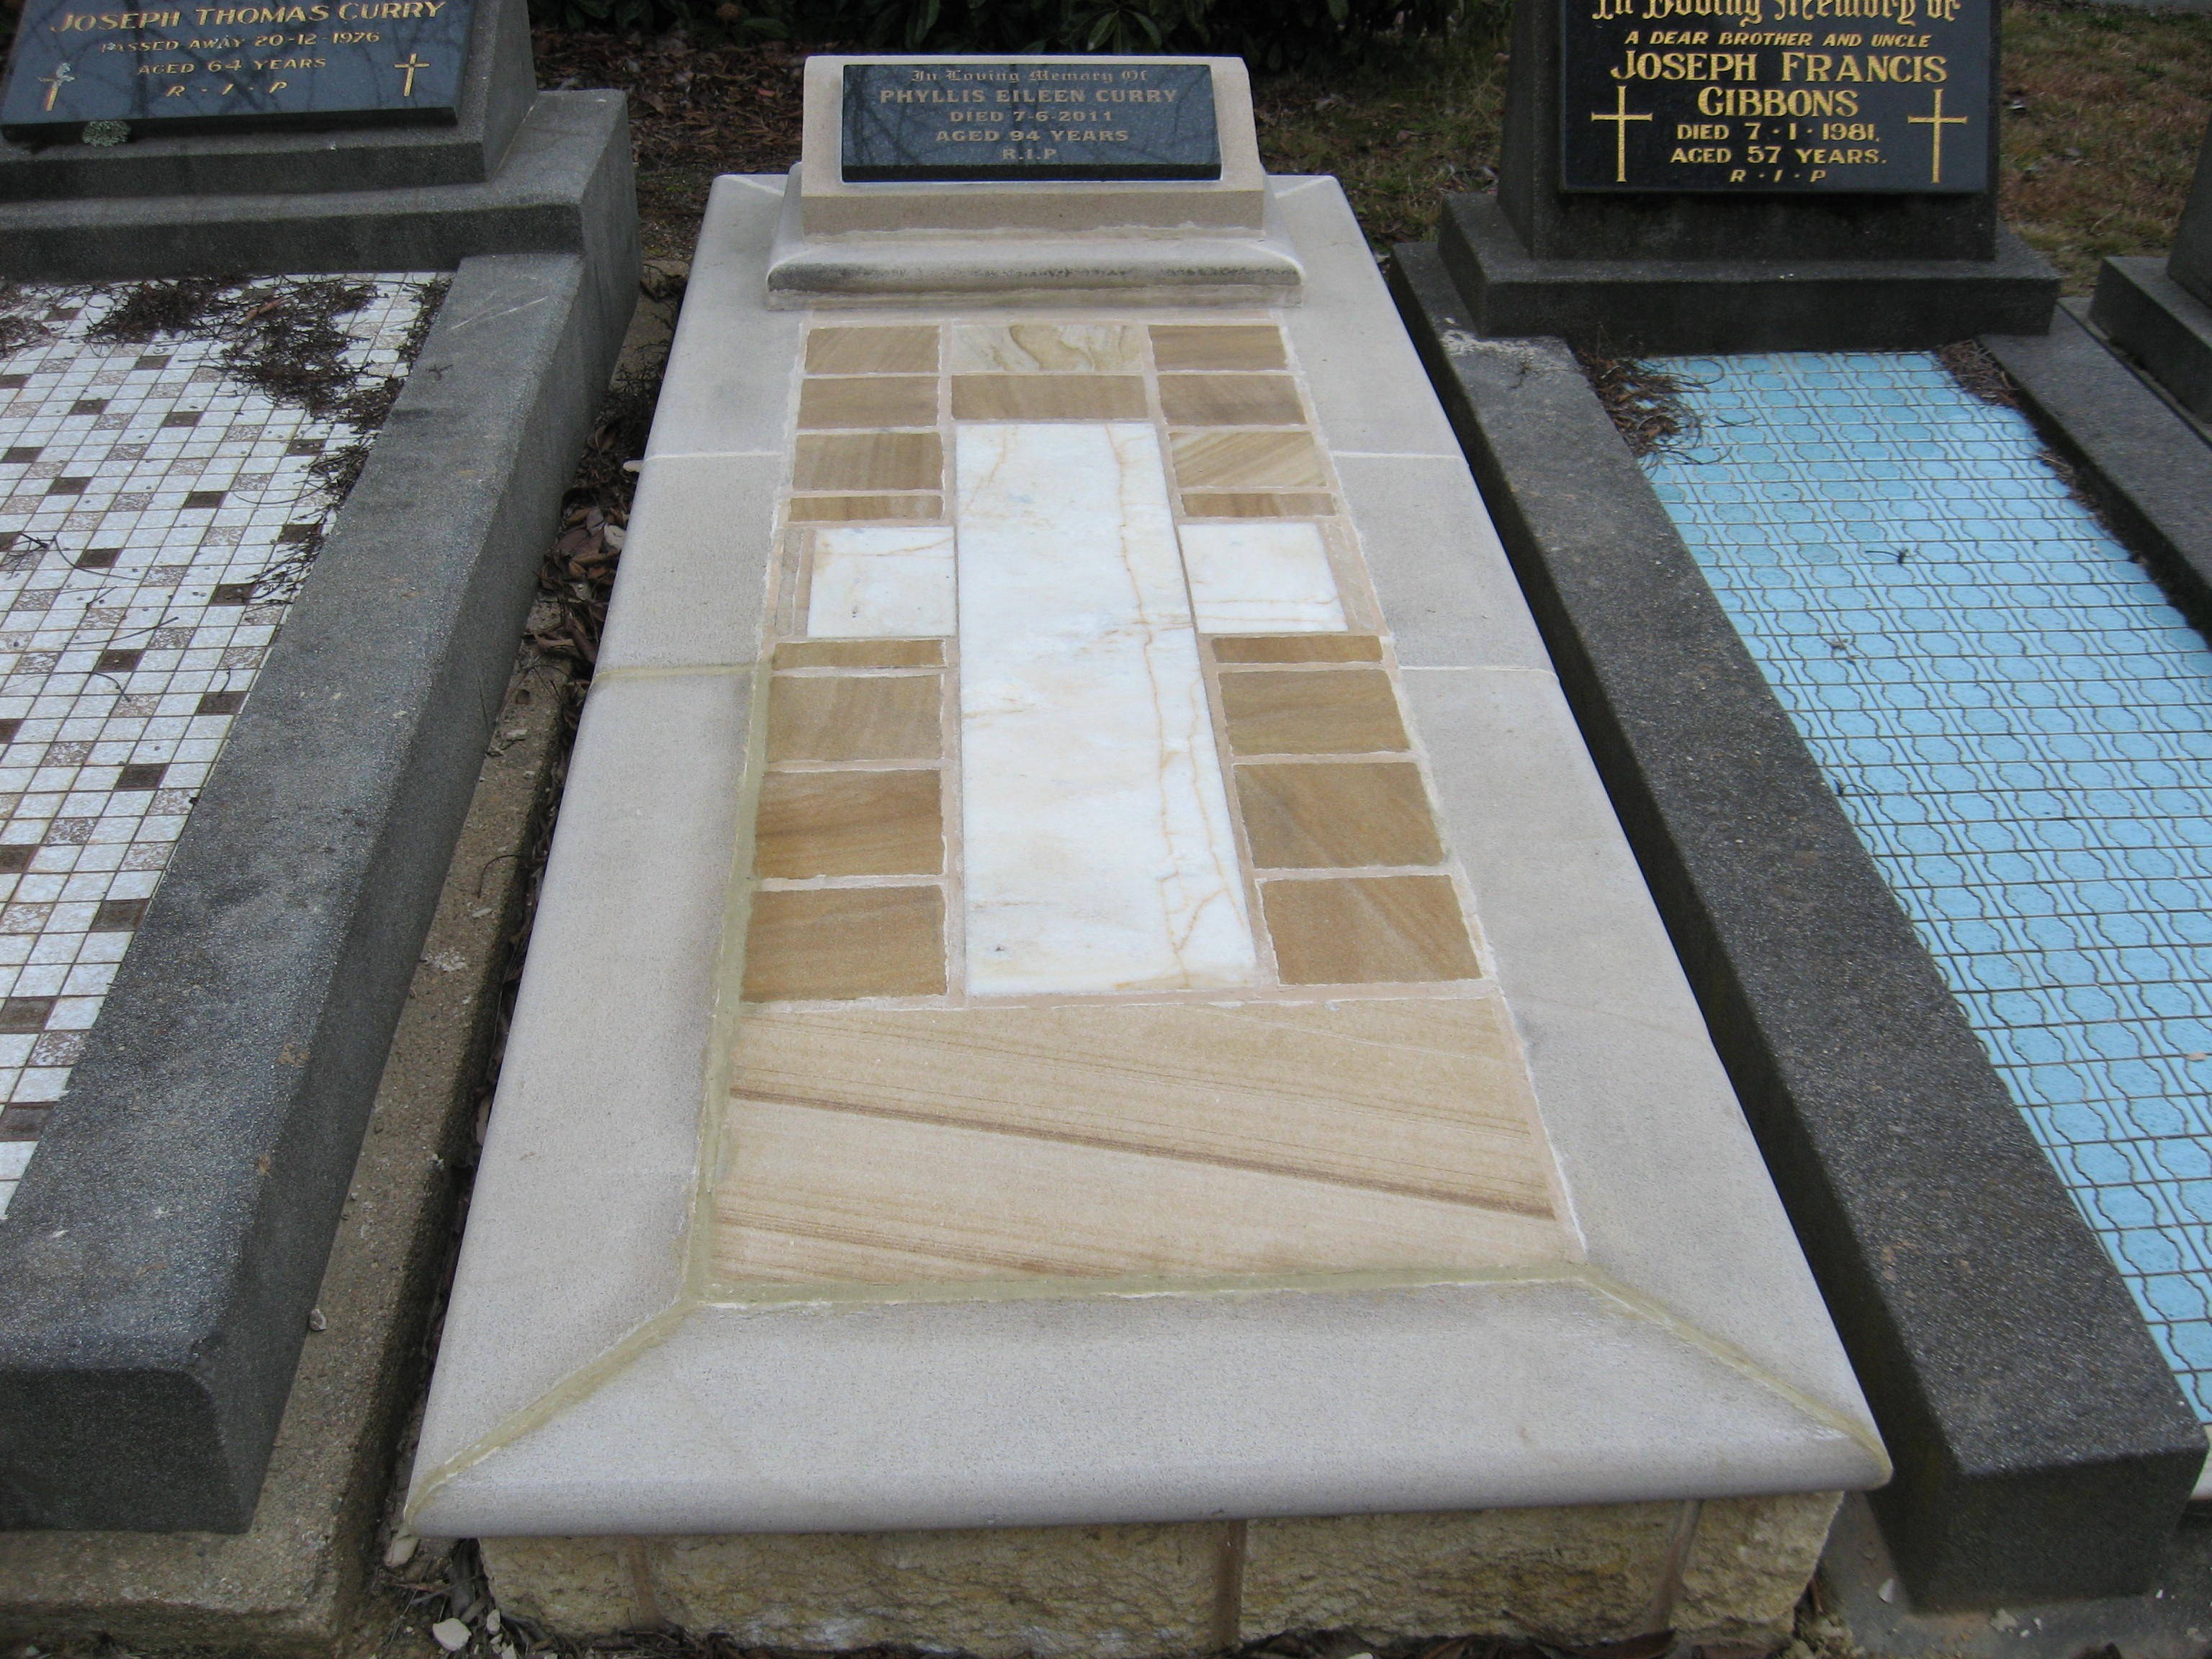 Sandstone and Marble Memorial